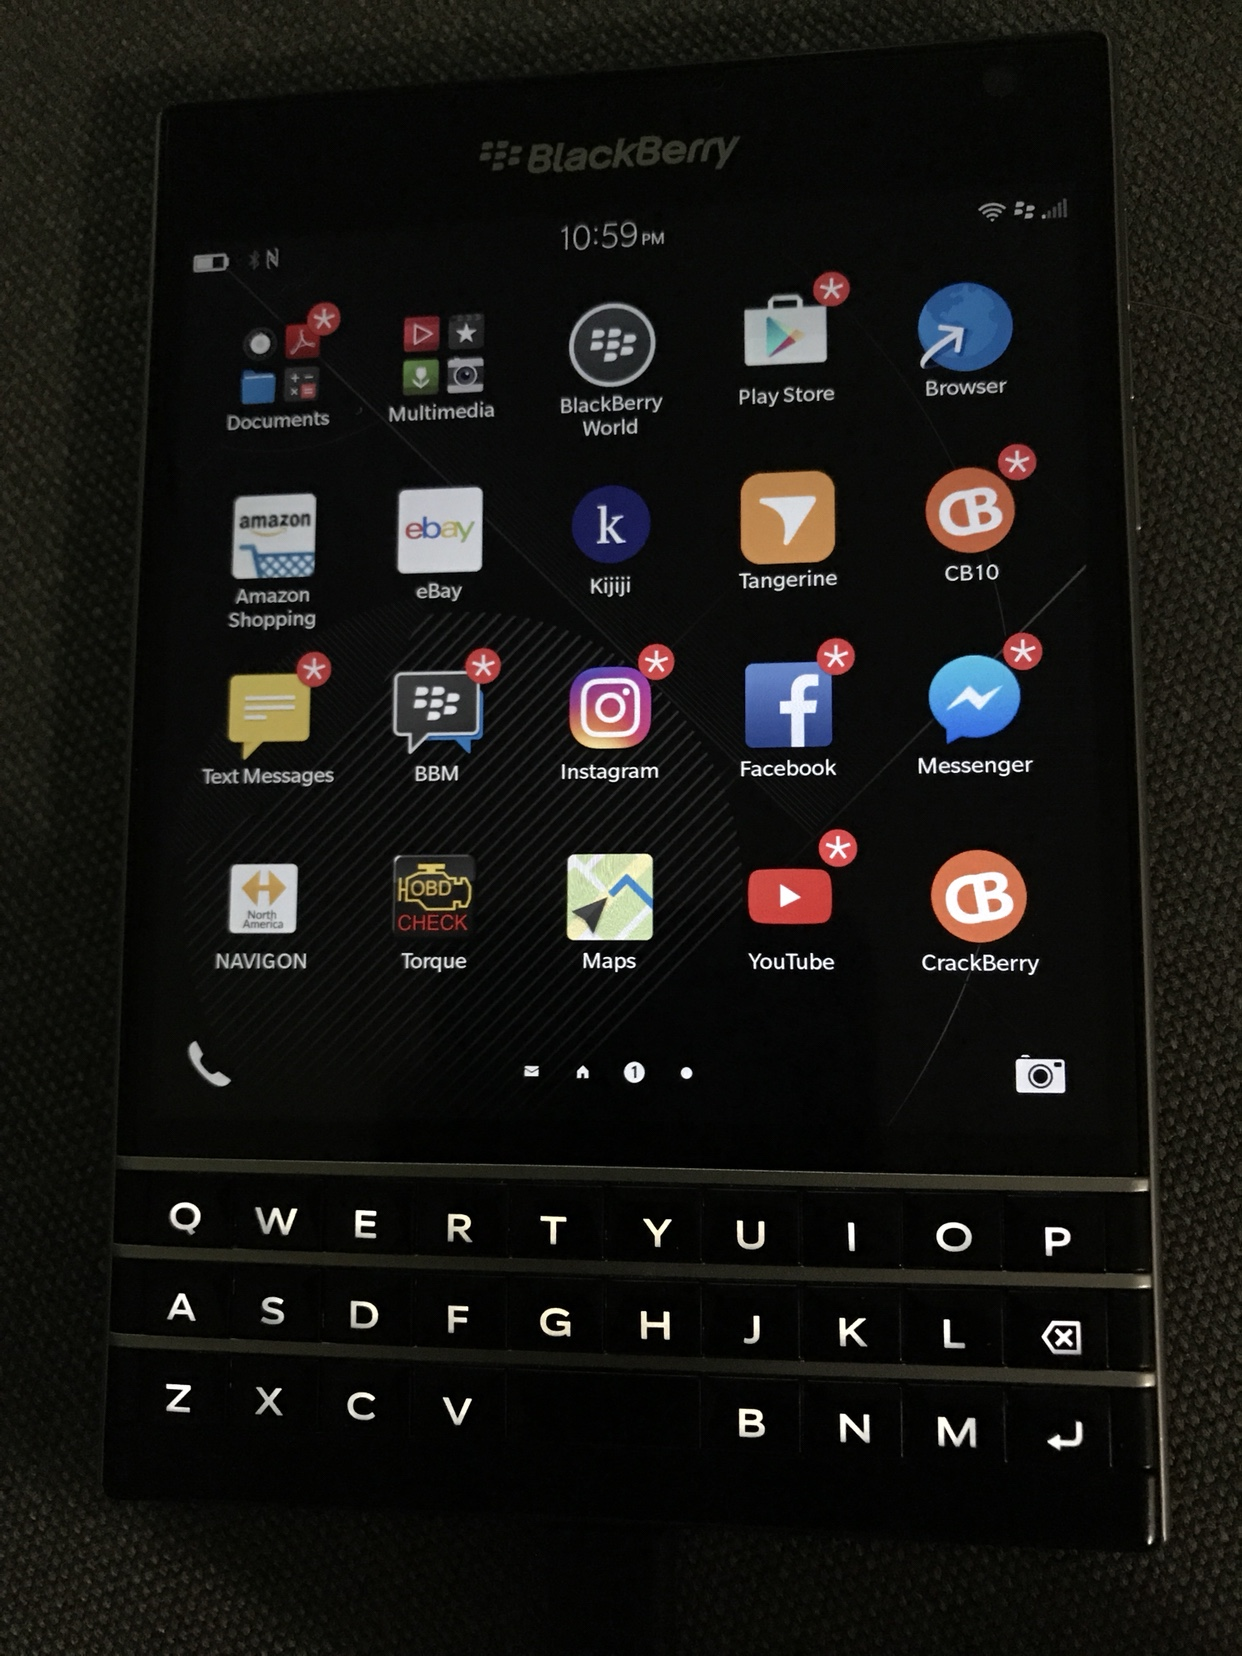 Passport Patched Android Apps Links - BlackBerry Forums at